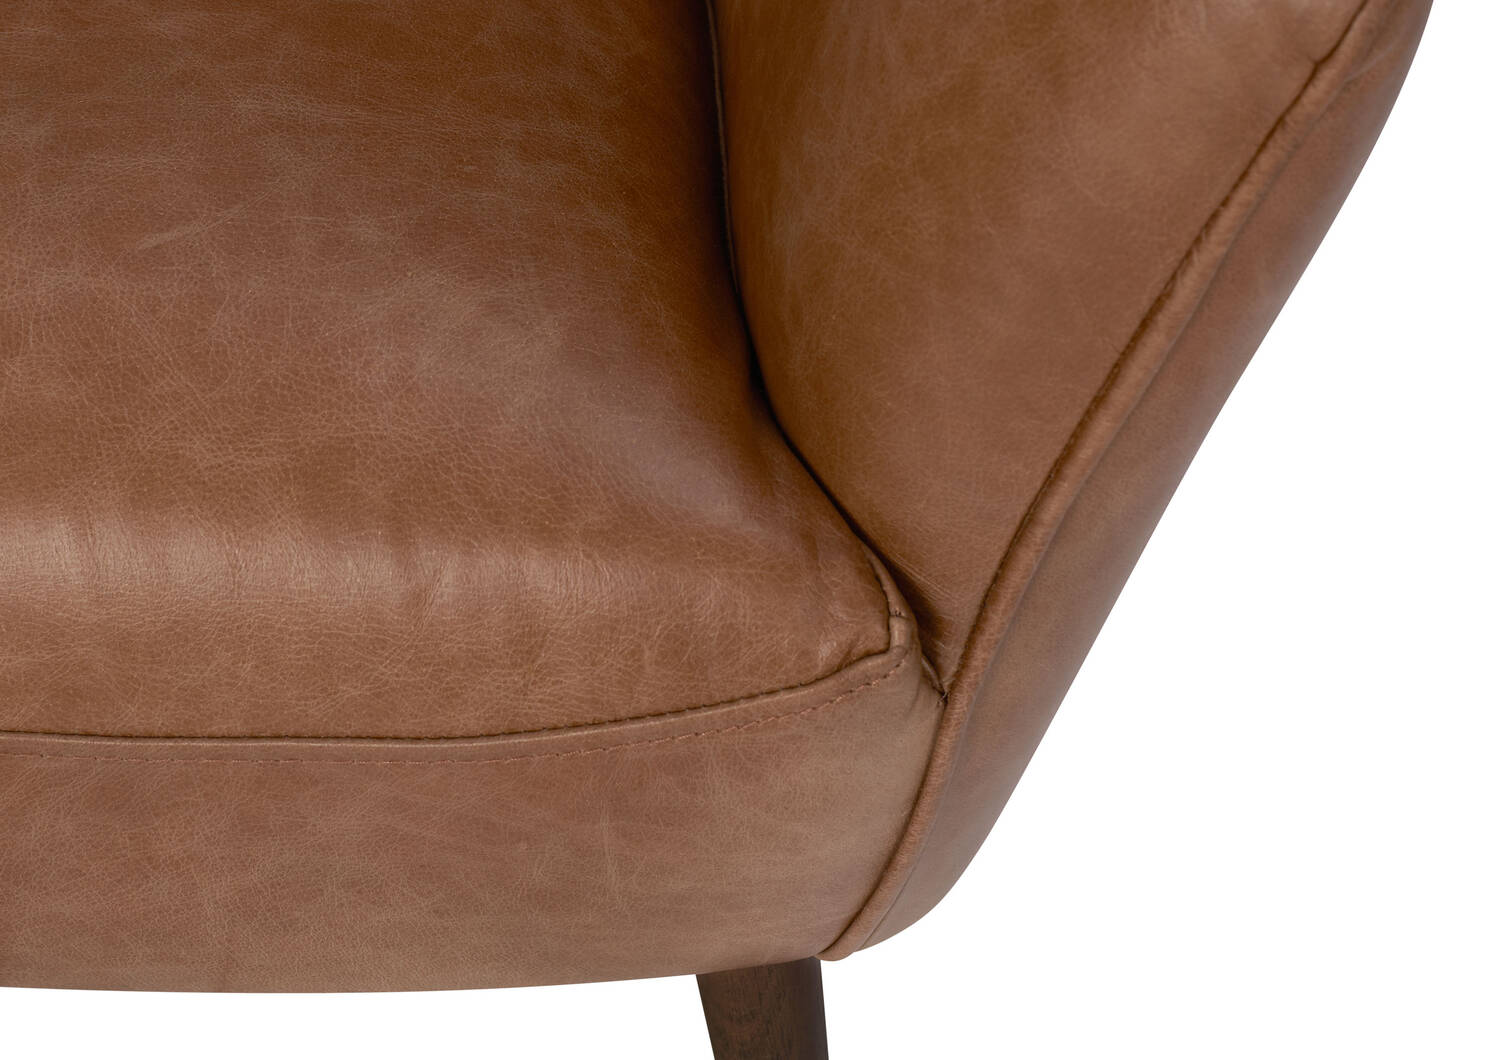 Diablo Leather Armchair -Harrod Tan